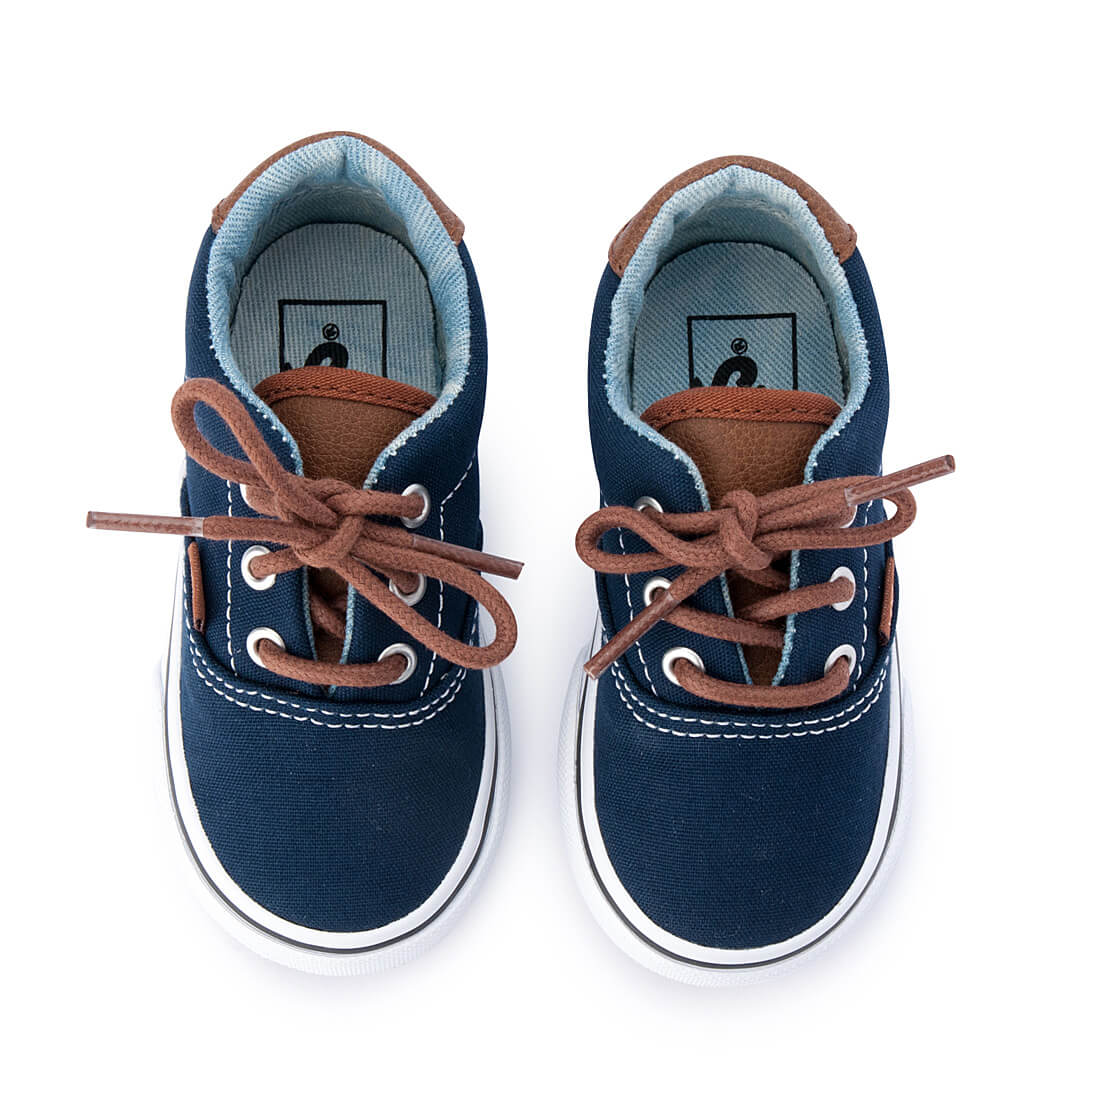 Vans Era 59 Kids Sneaker – Navy top pair